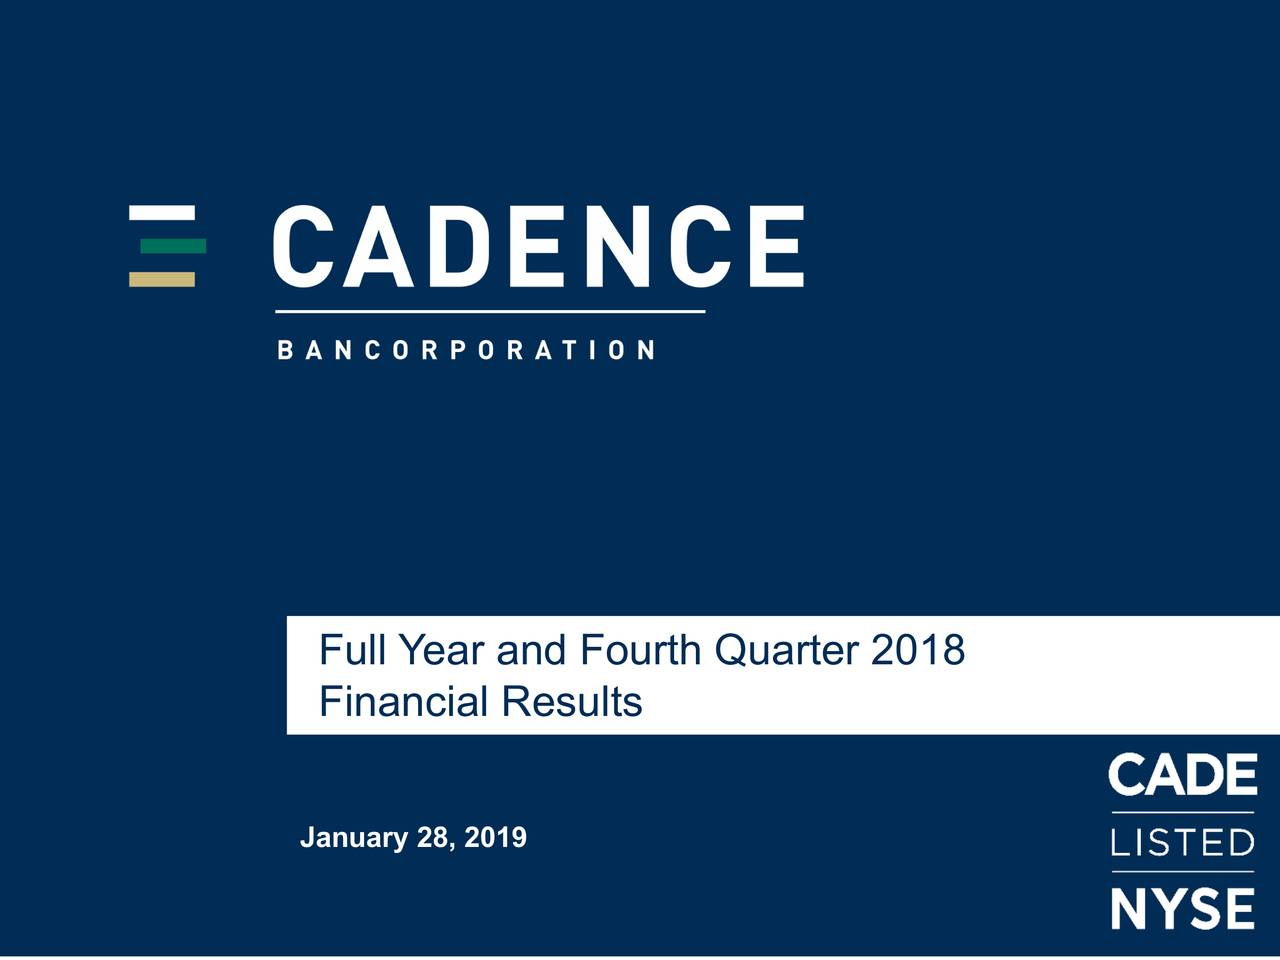 ANALYST Paul B. Murphy, Jr. Chairman and CEO February 7, 2017 Full Year and Fourth Quarter 2018 Financial Results January 28, 2019 Cadence Bank, N.A. Member FDIC